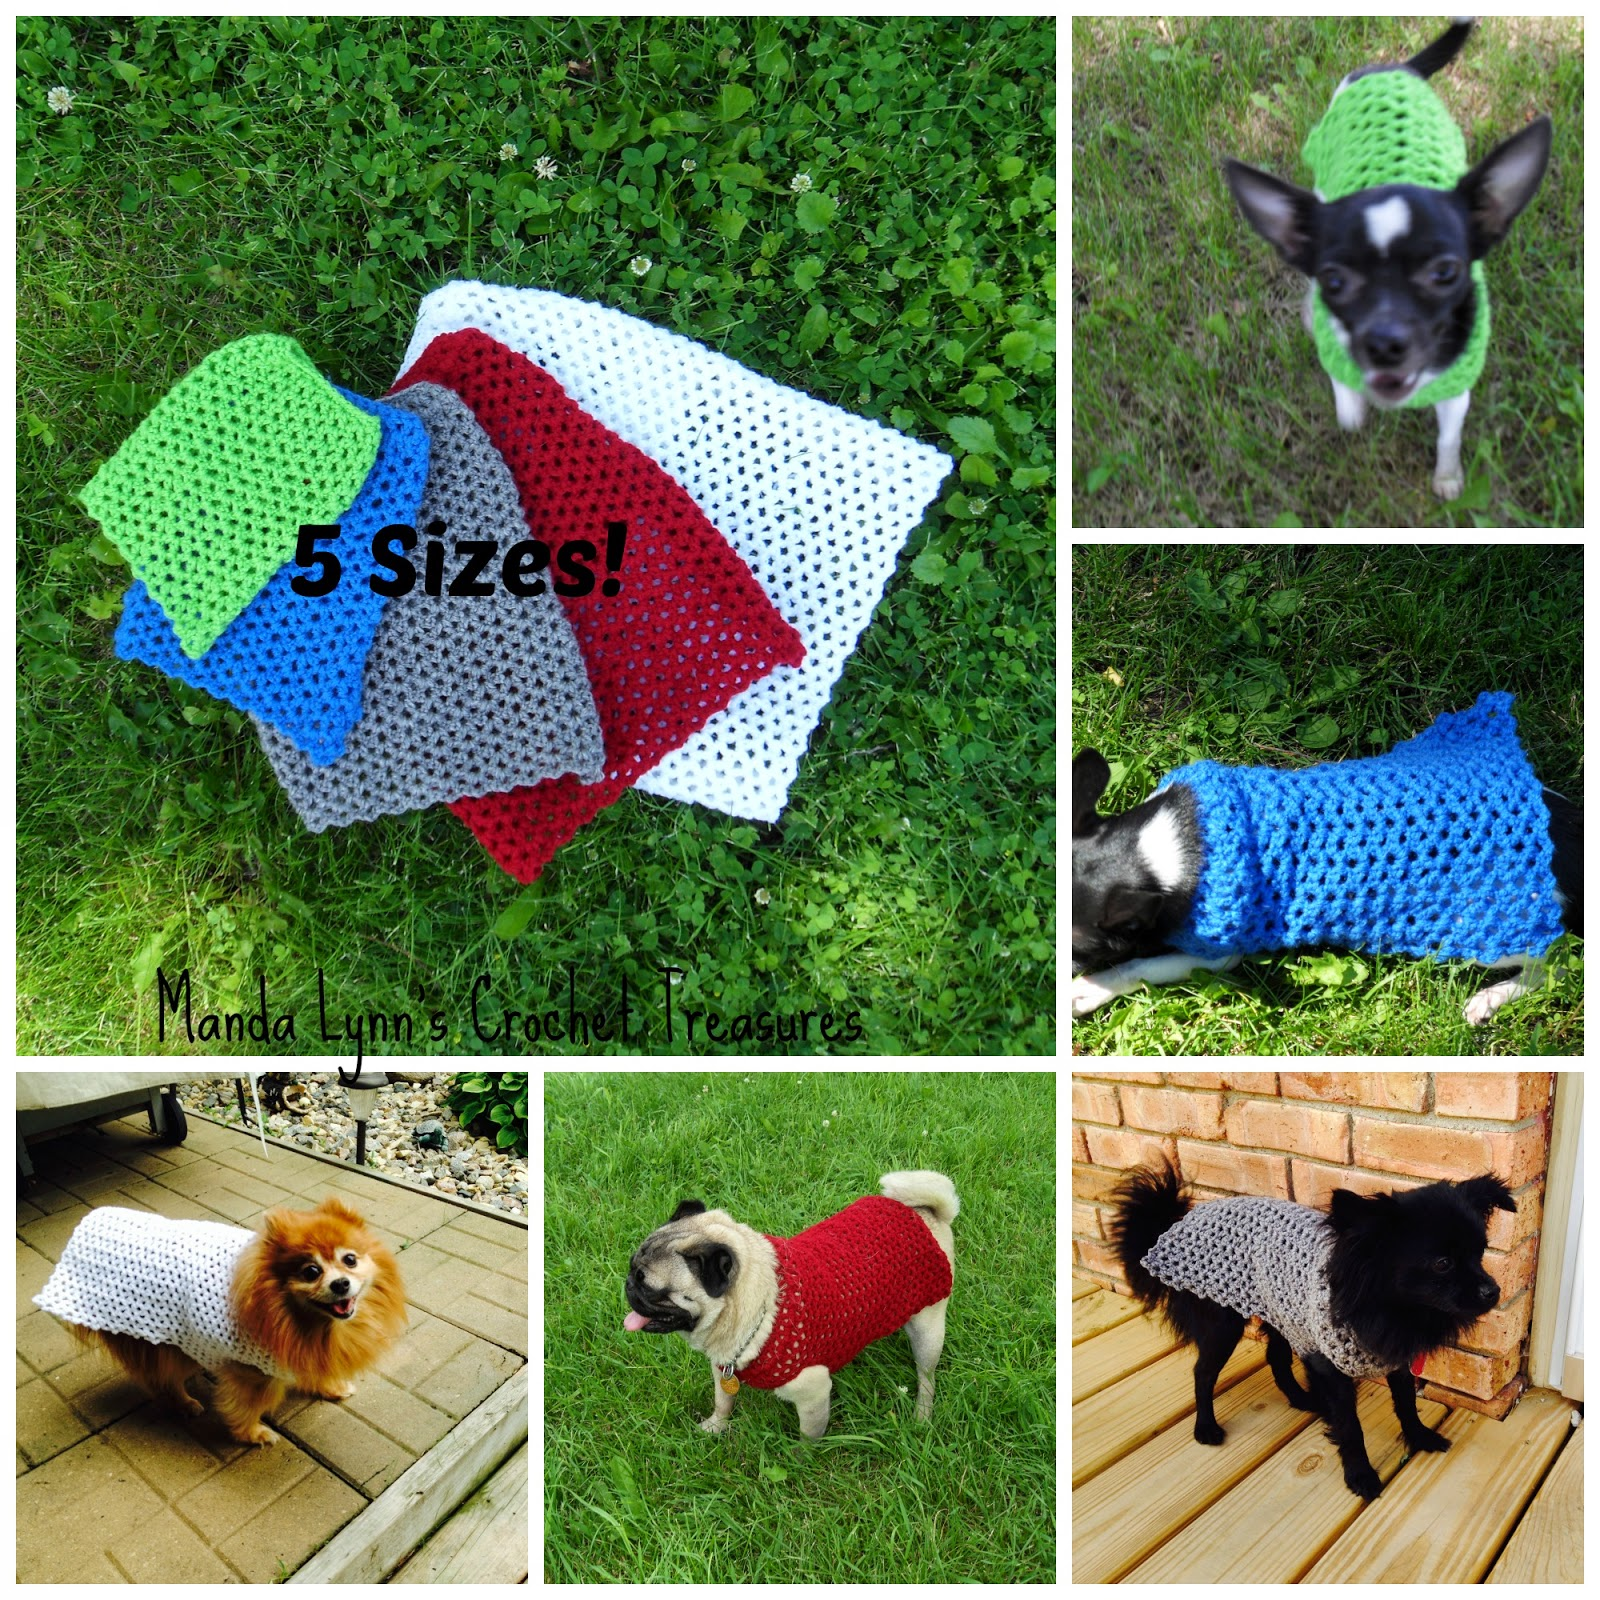 MandaLynn\'s Crochet Treasures : Crochet Any Occasion Dog Sweater 5 Sizes